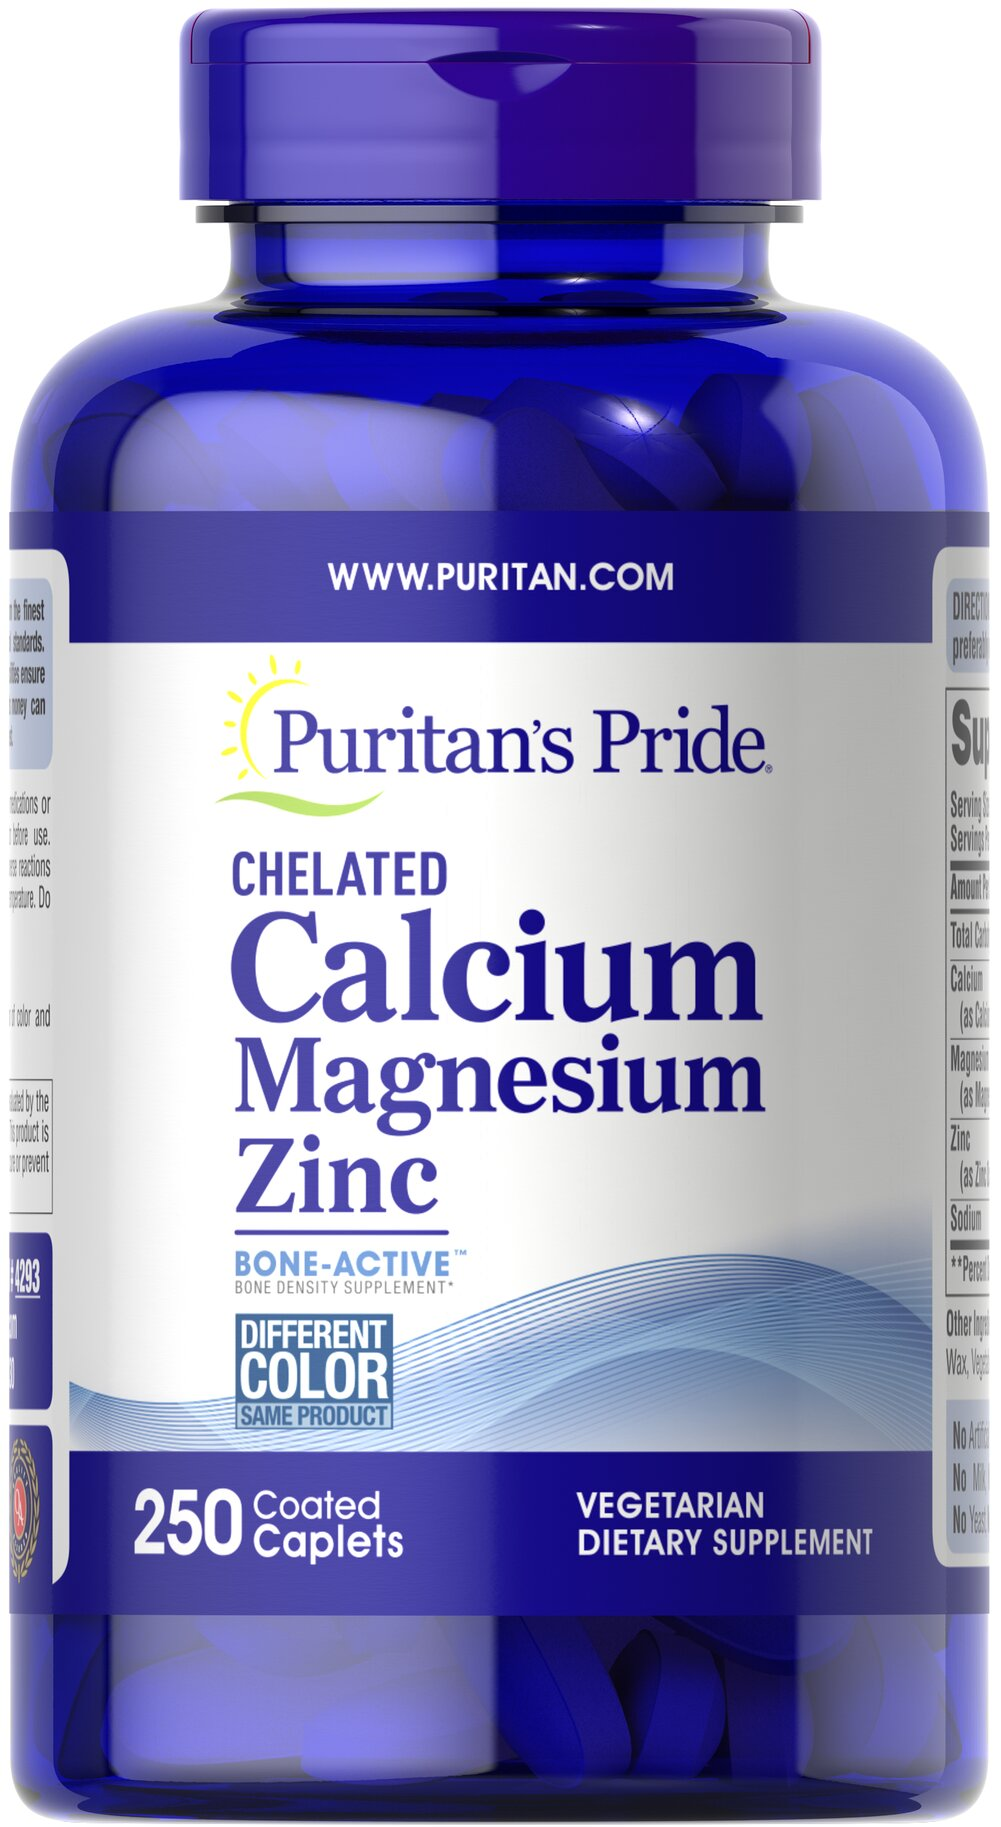 Chelated Calcium Magnesium Zinc <p>Looking for extra support for your bones?</p><p>Puritan's Pride offers a high quality Calcium, Magnesium, Zinc supplement that delivers 1000 mg Calcium, 400 mg Magnesium and 25 mg Zinc in one chelated form for optimal absorption.</p> 250 Caplets 1000 mg/400 mg/25 mg $16.19